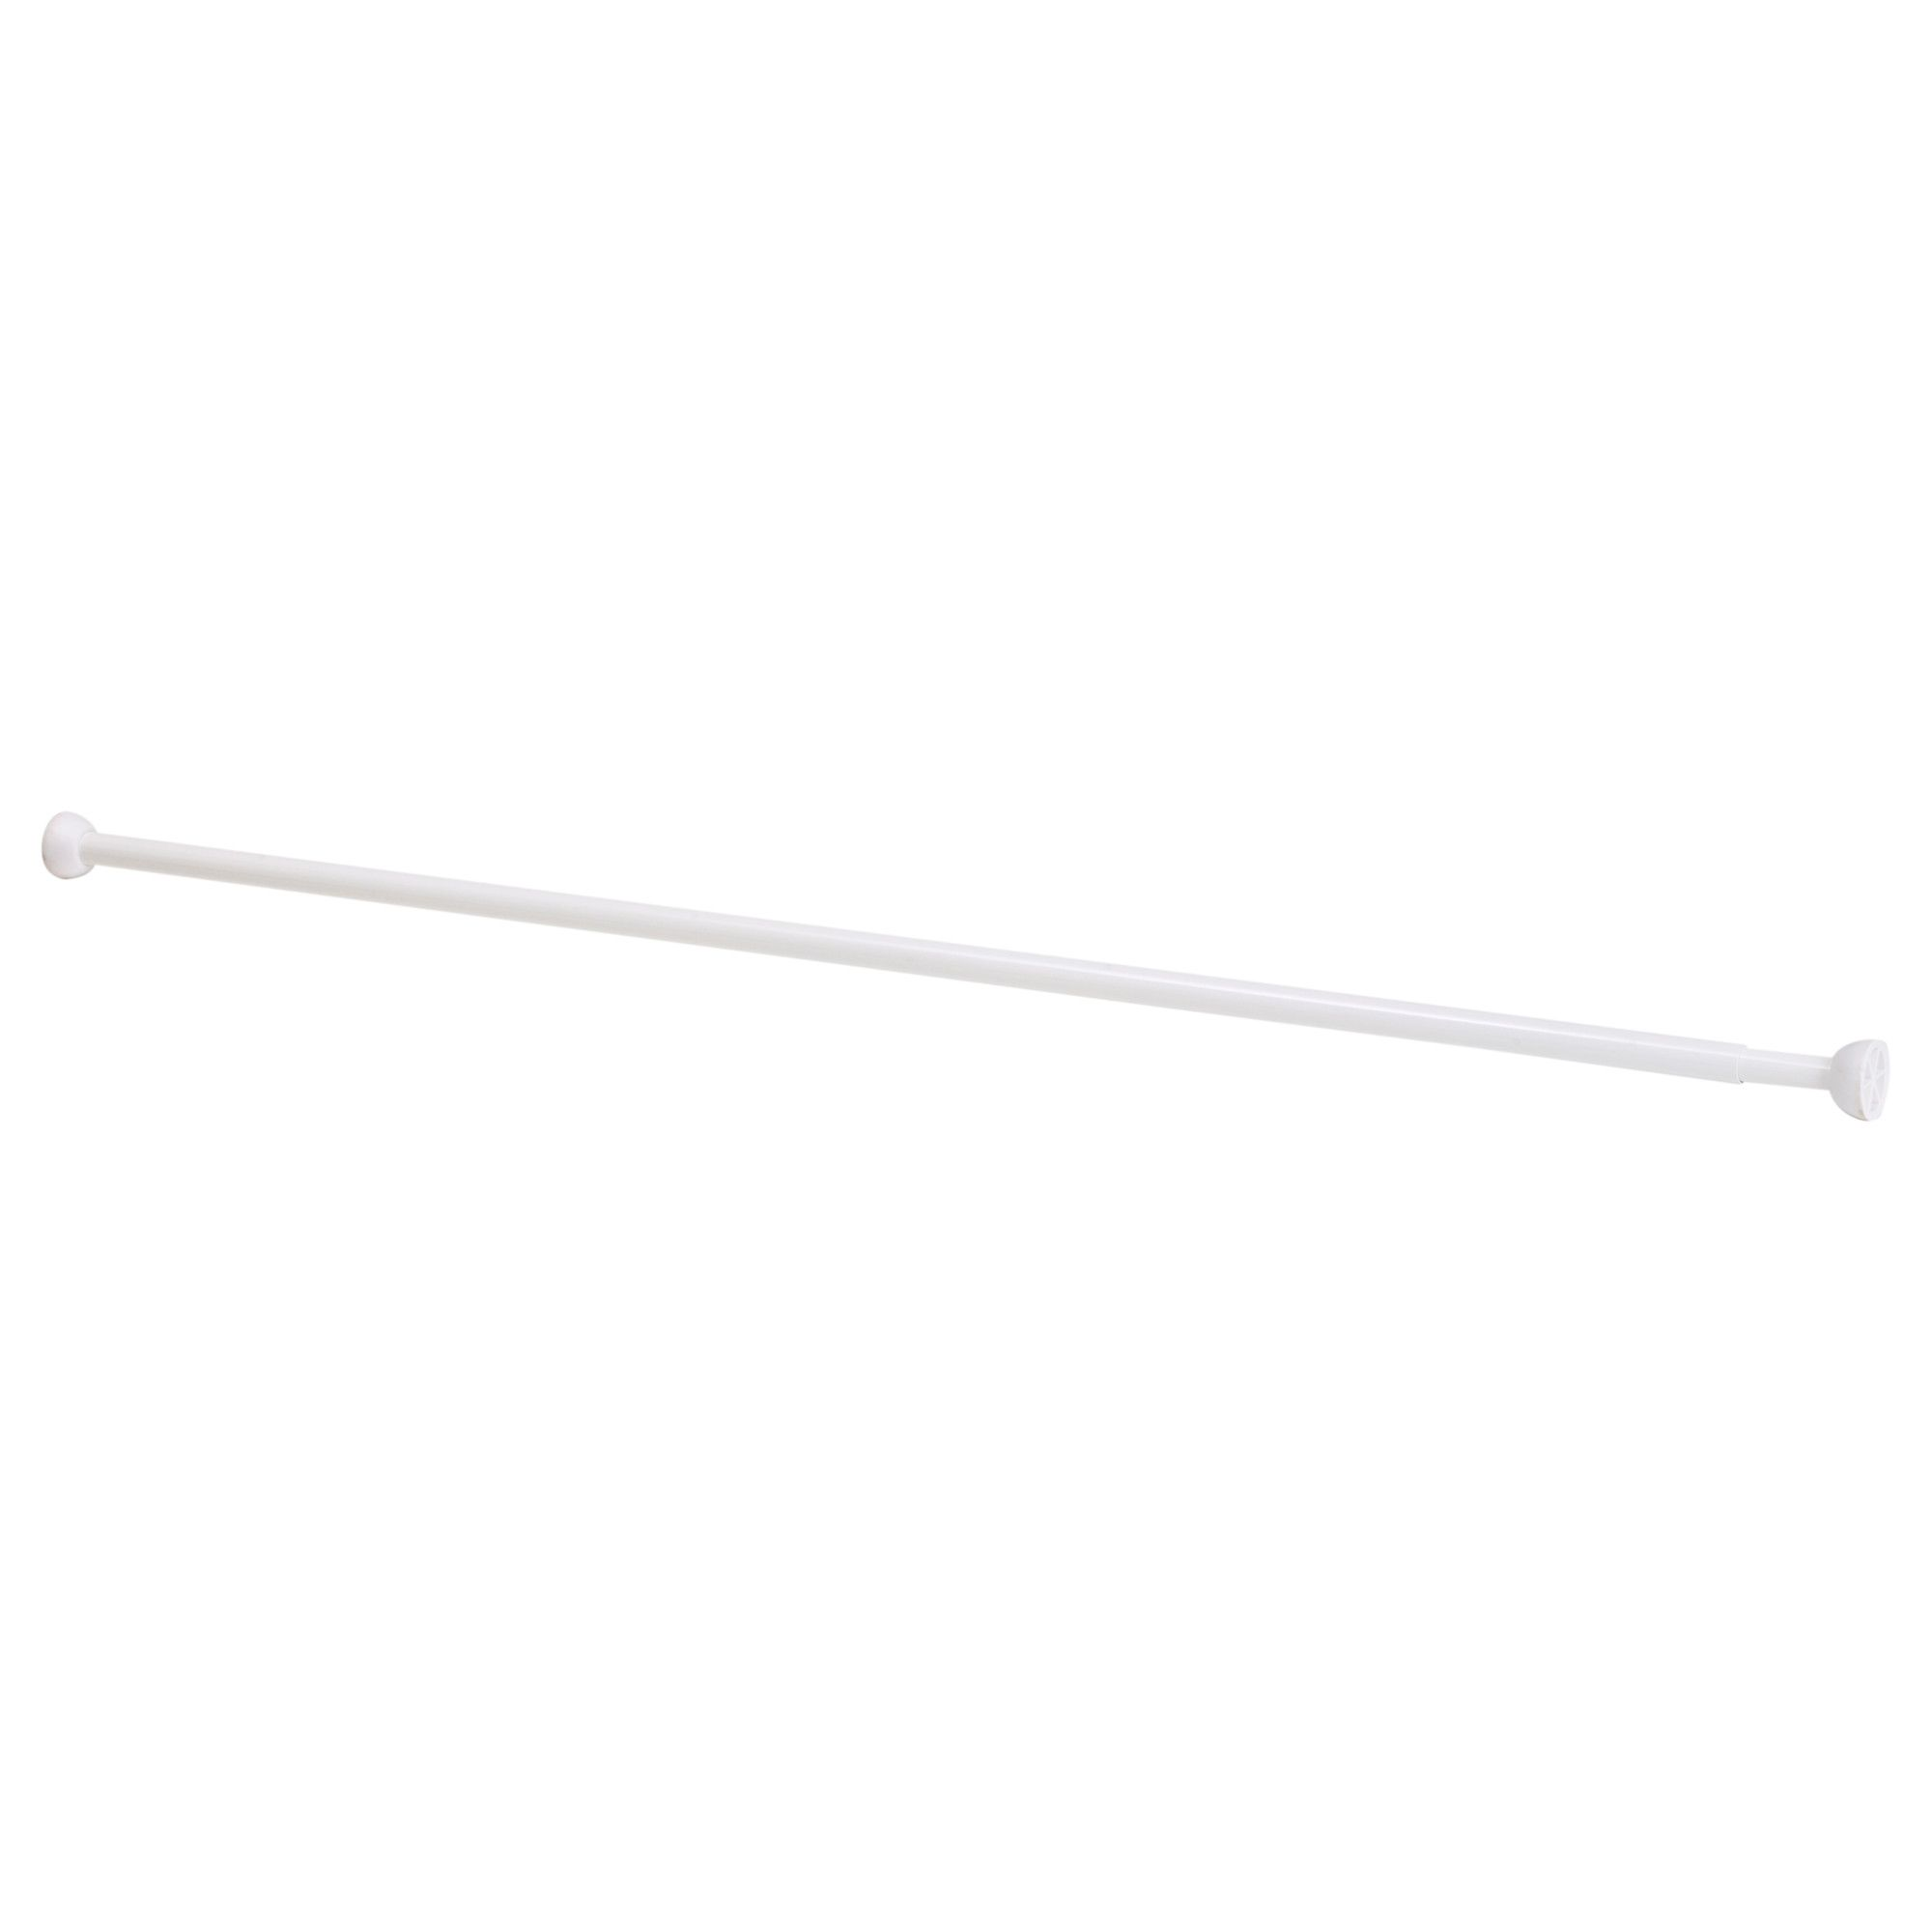 ore shower curtain rod - ikea for window herb garden | what i want